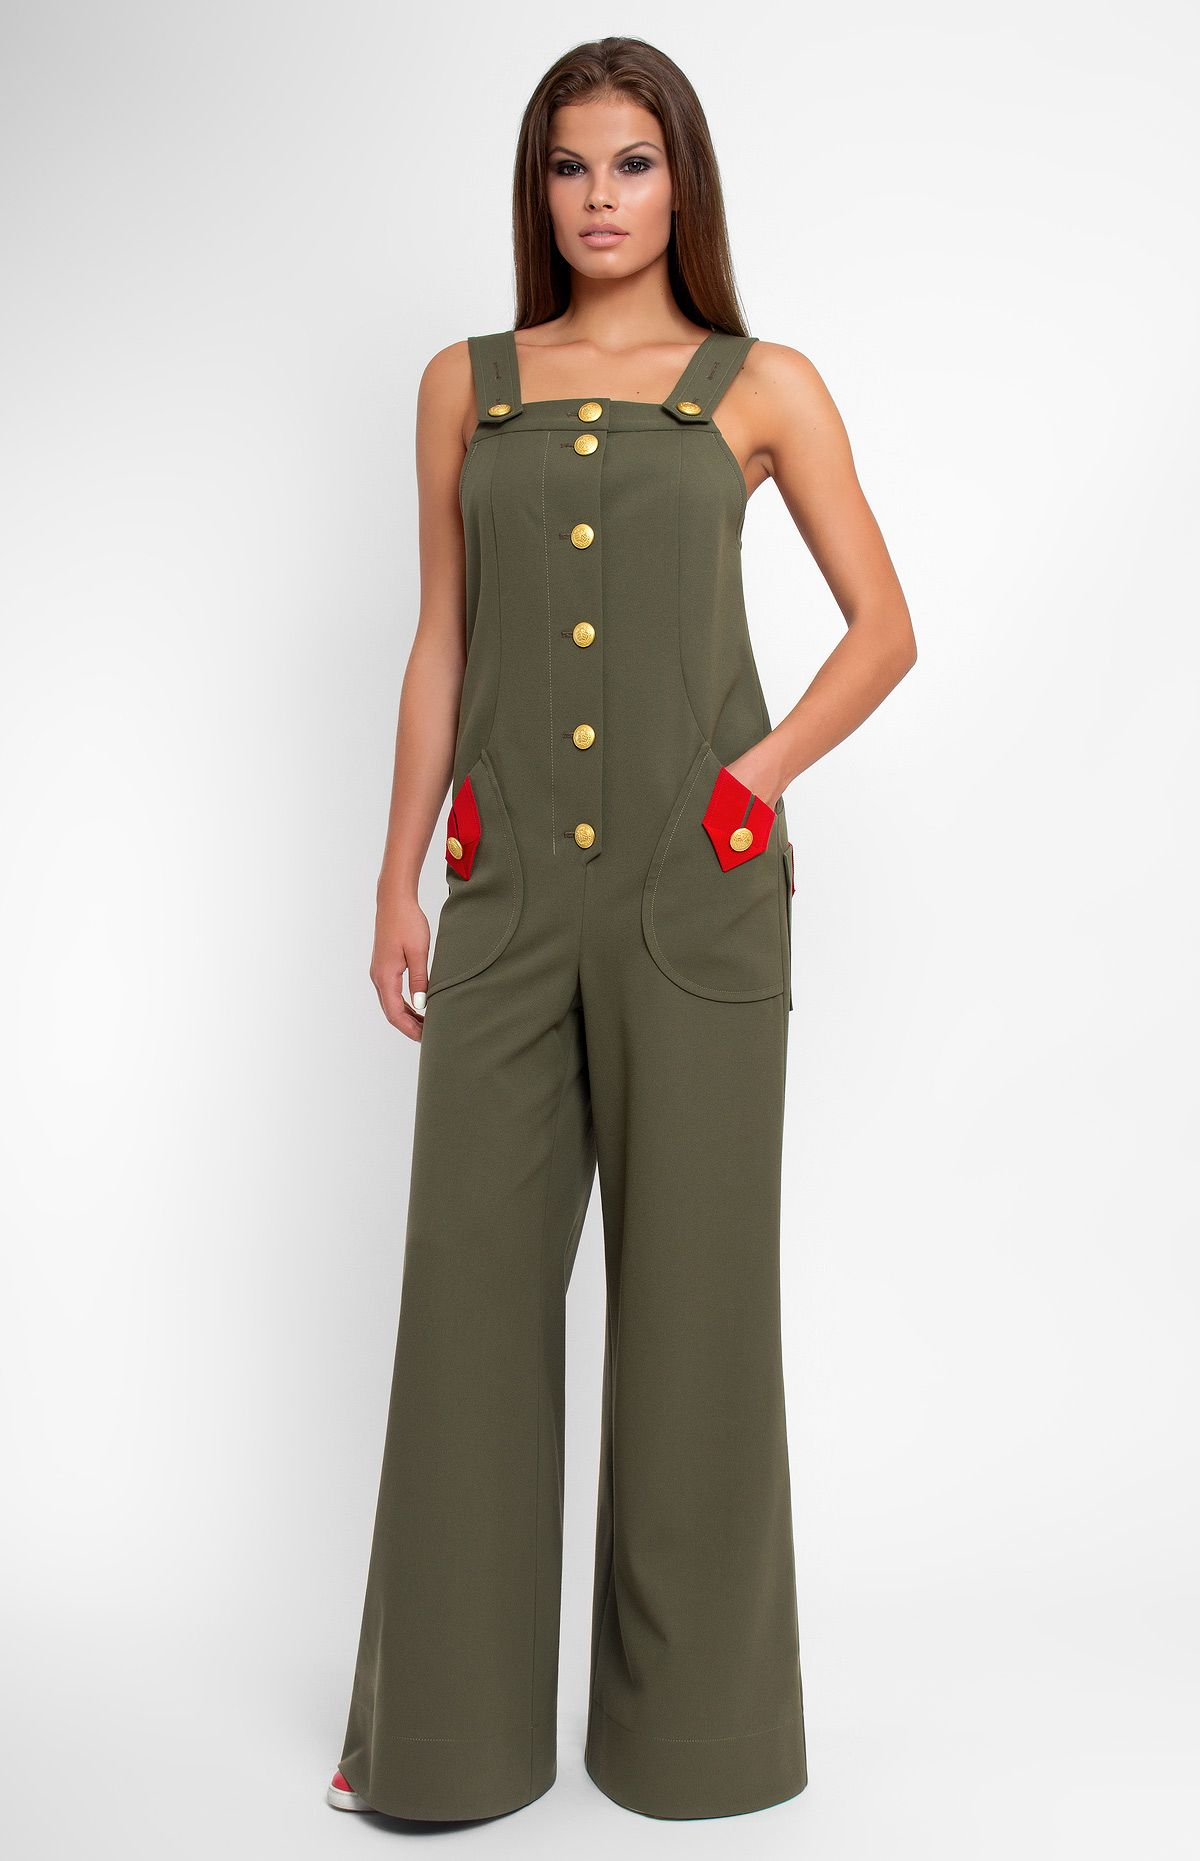 7832e1a4796 Sleeveless military style stretchy cotton overall. Button down closure.  Front and back patch pockets. Bow with a designer handmade rose. Unlined.